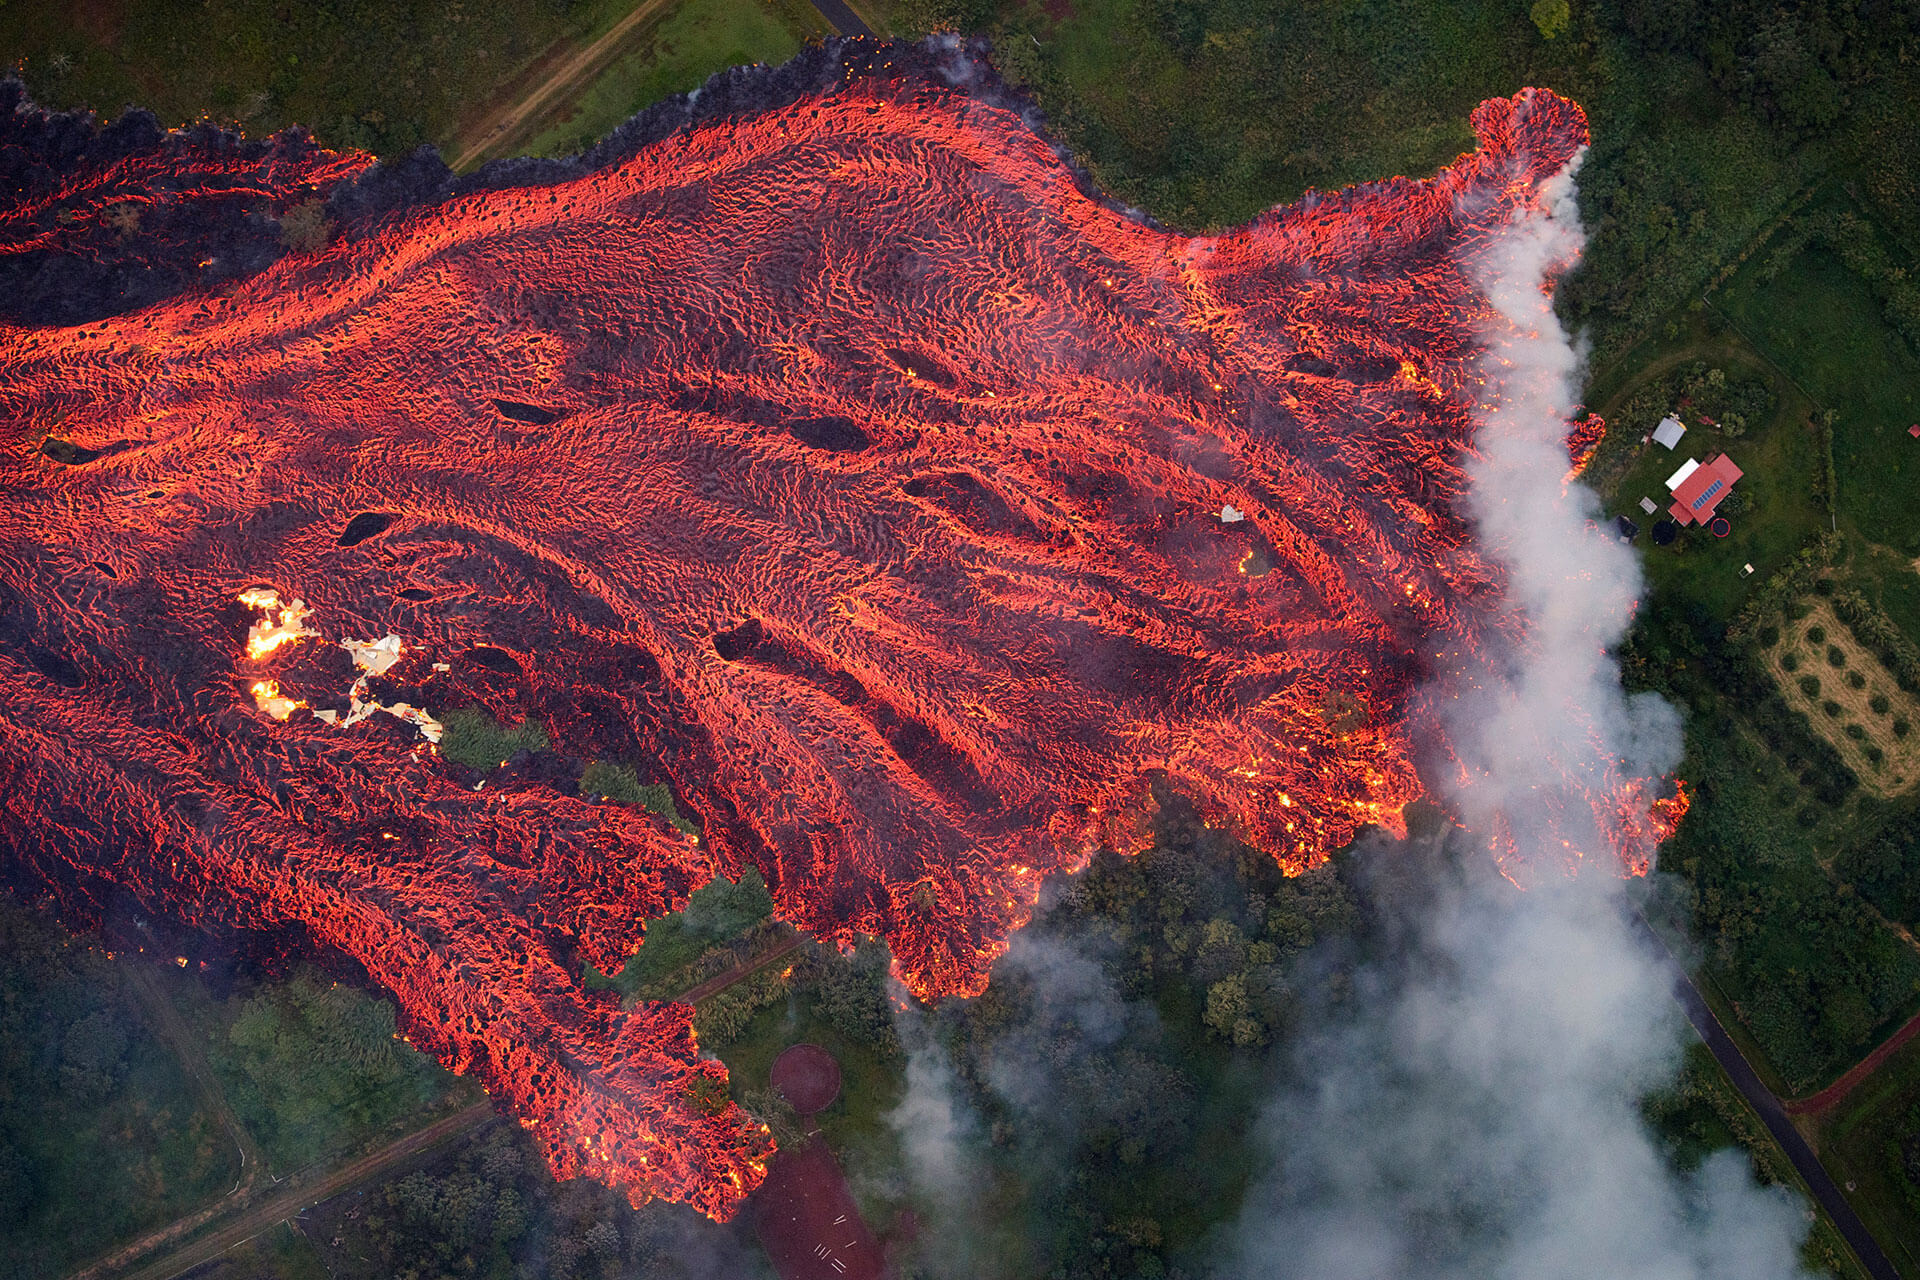 A fast-moving lava flow